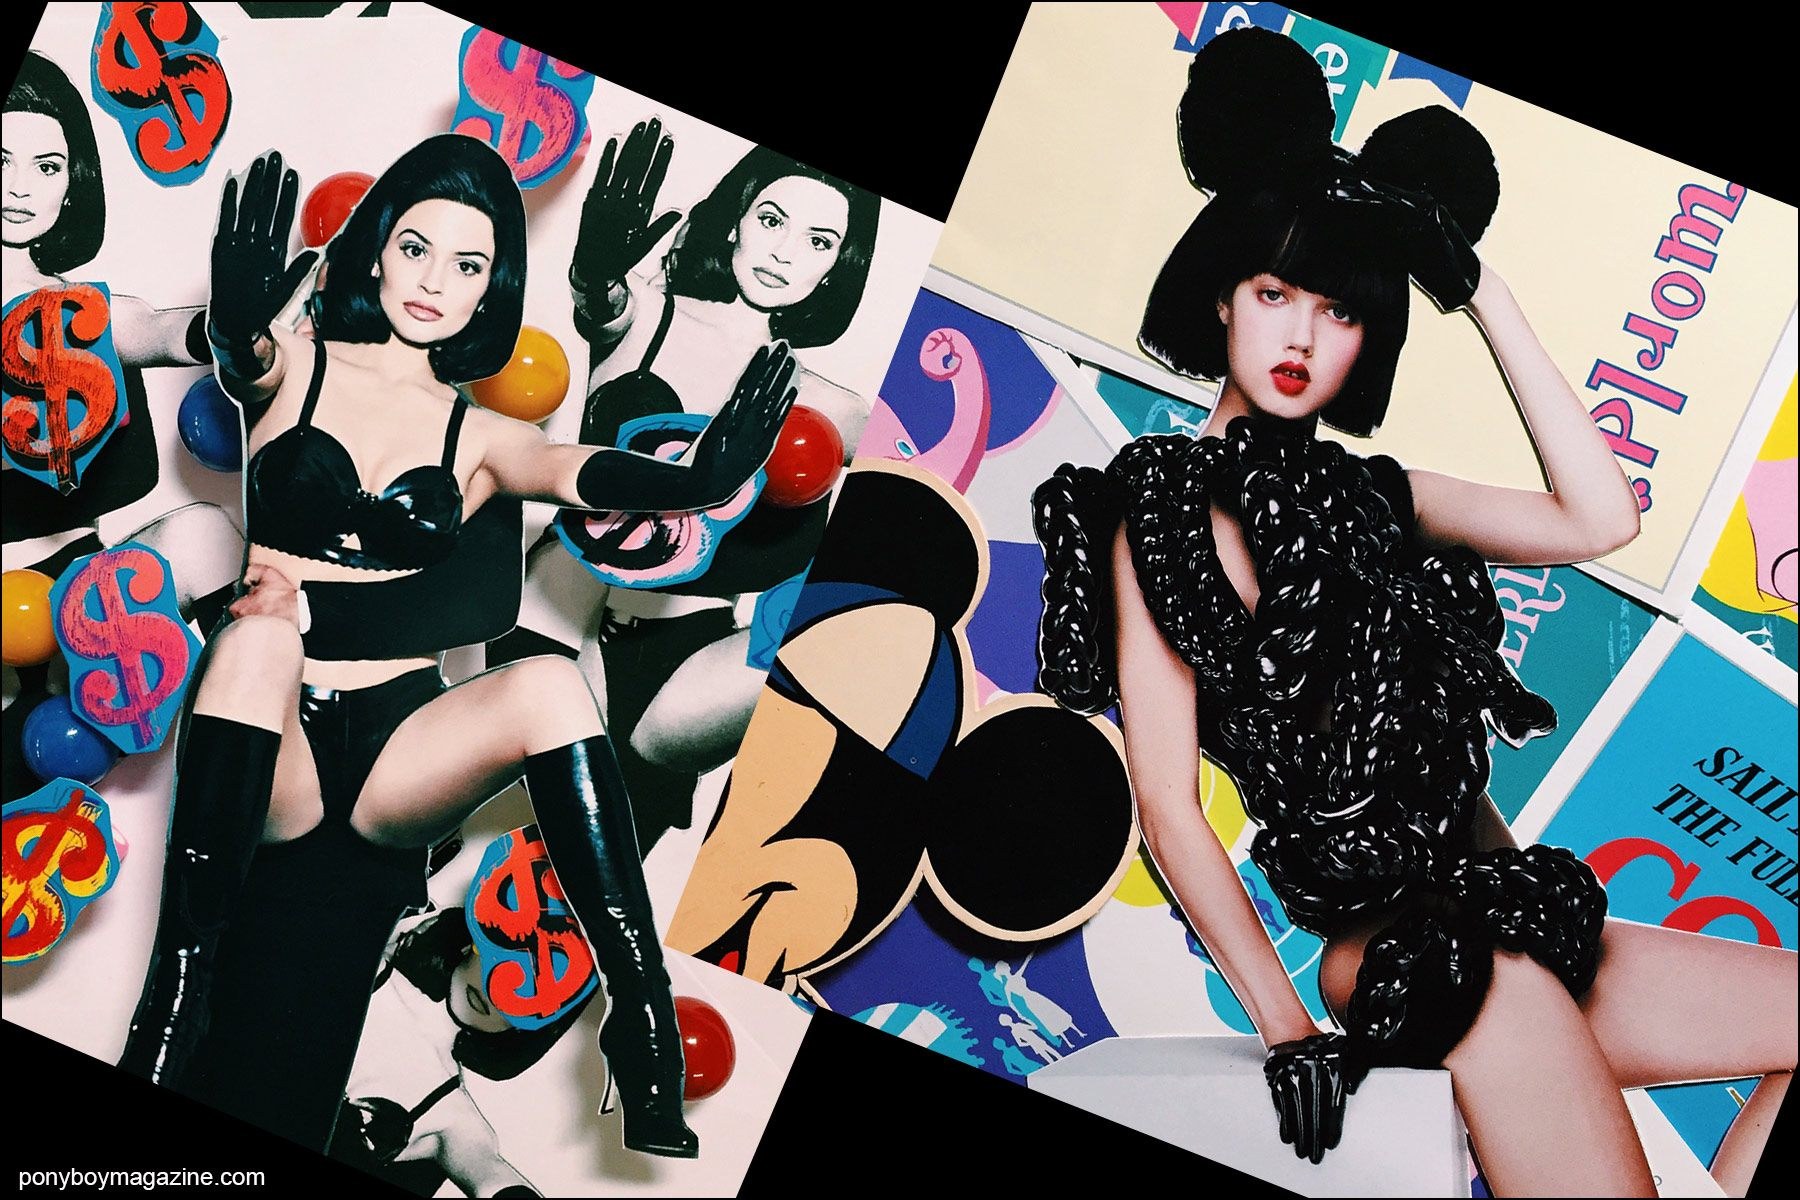 Collage artwork of Kylie Jenner and Lindsey Wixson images by Patrick Keohane for RS Theory. Ponyboy magazine NY.